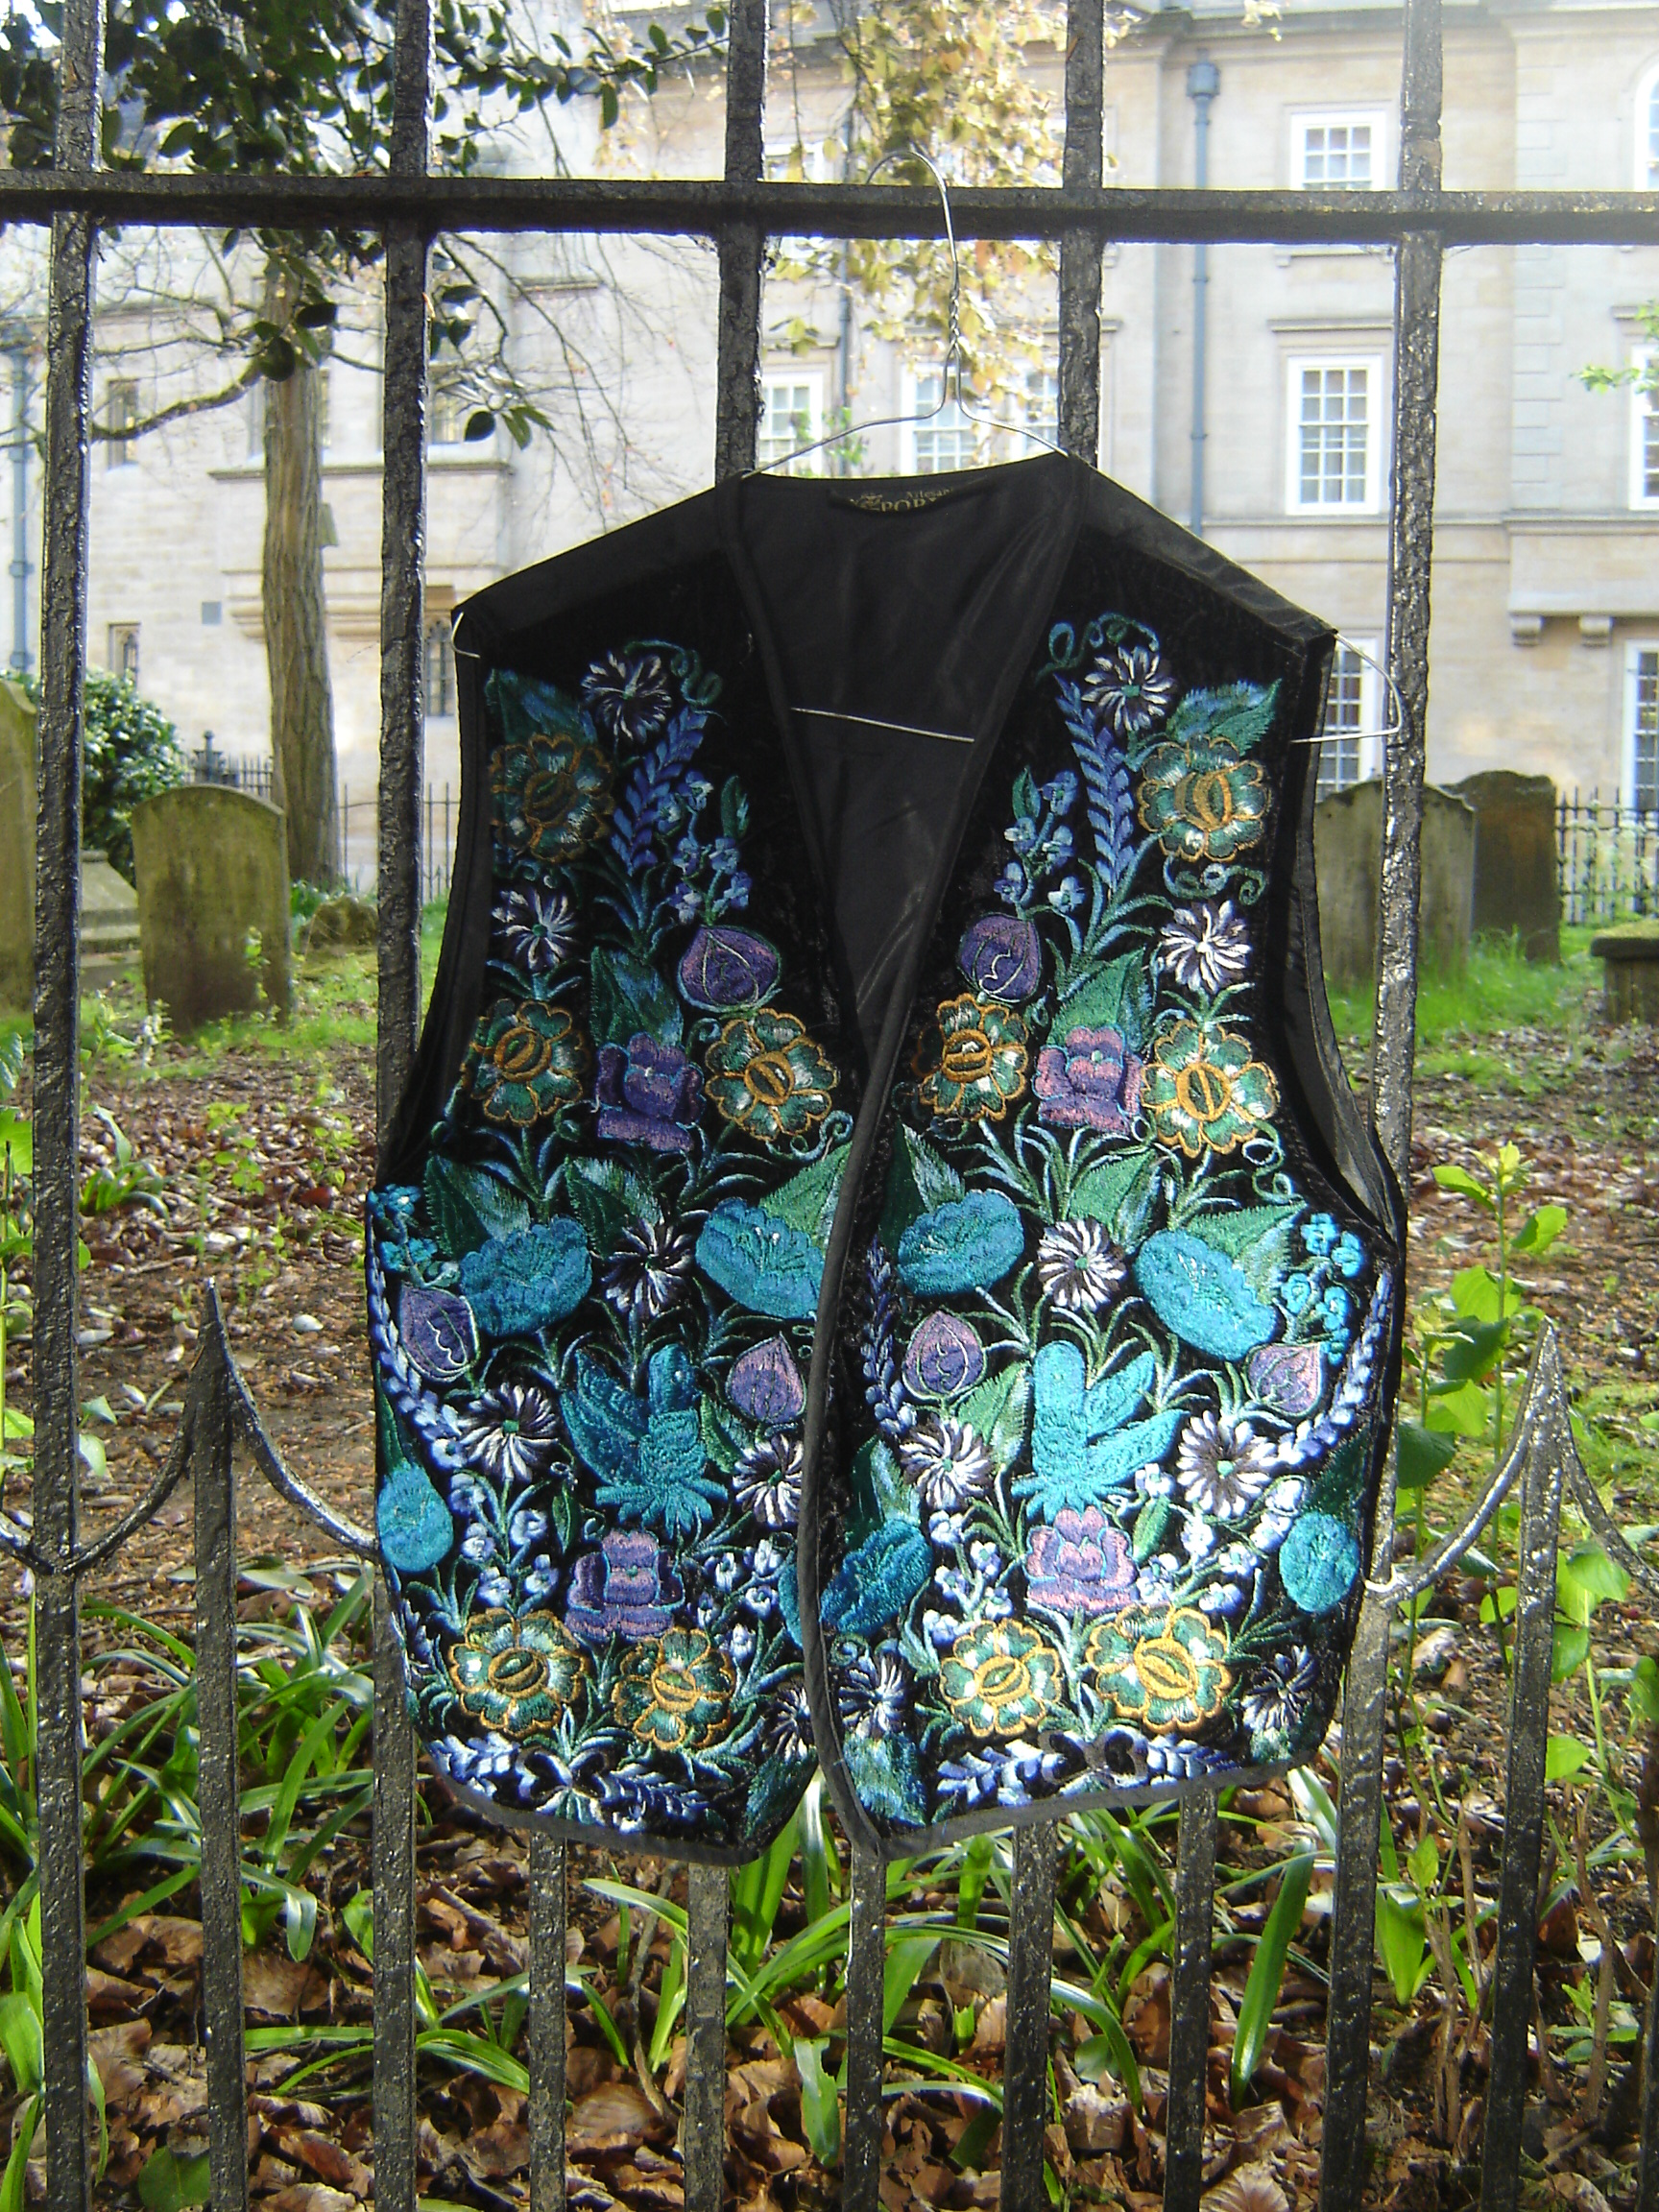 Artesania Pop Wuh embroidered waistcoat, from Unicorn, 5 Ship Street, Oxford